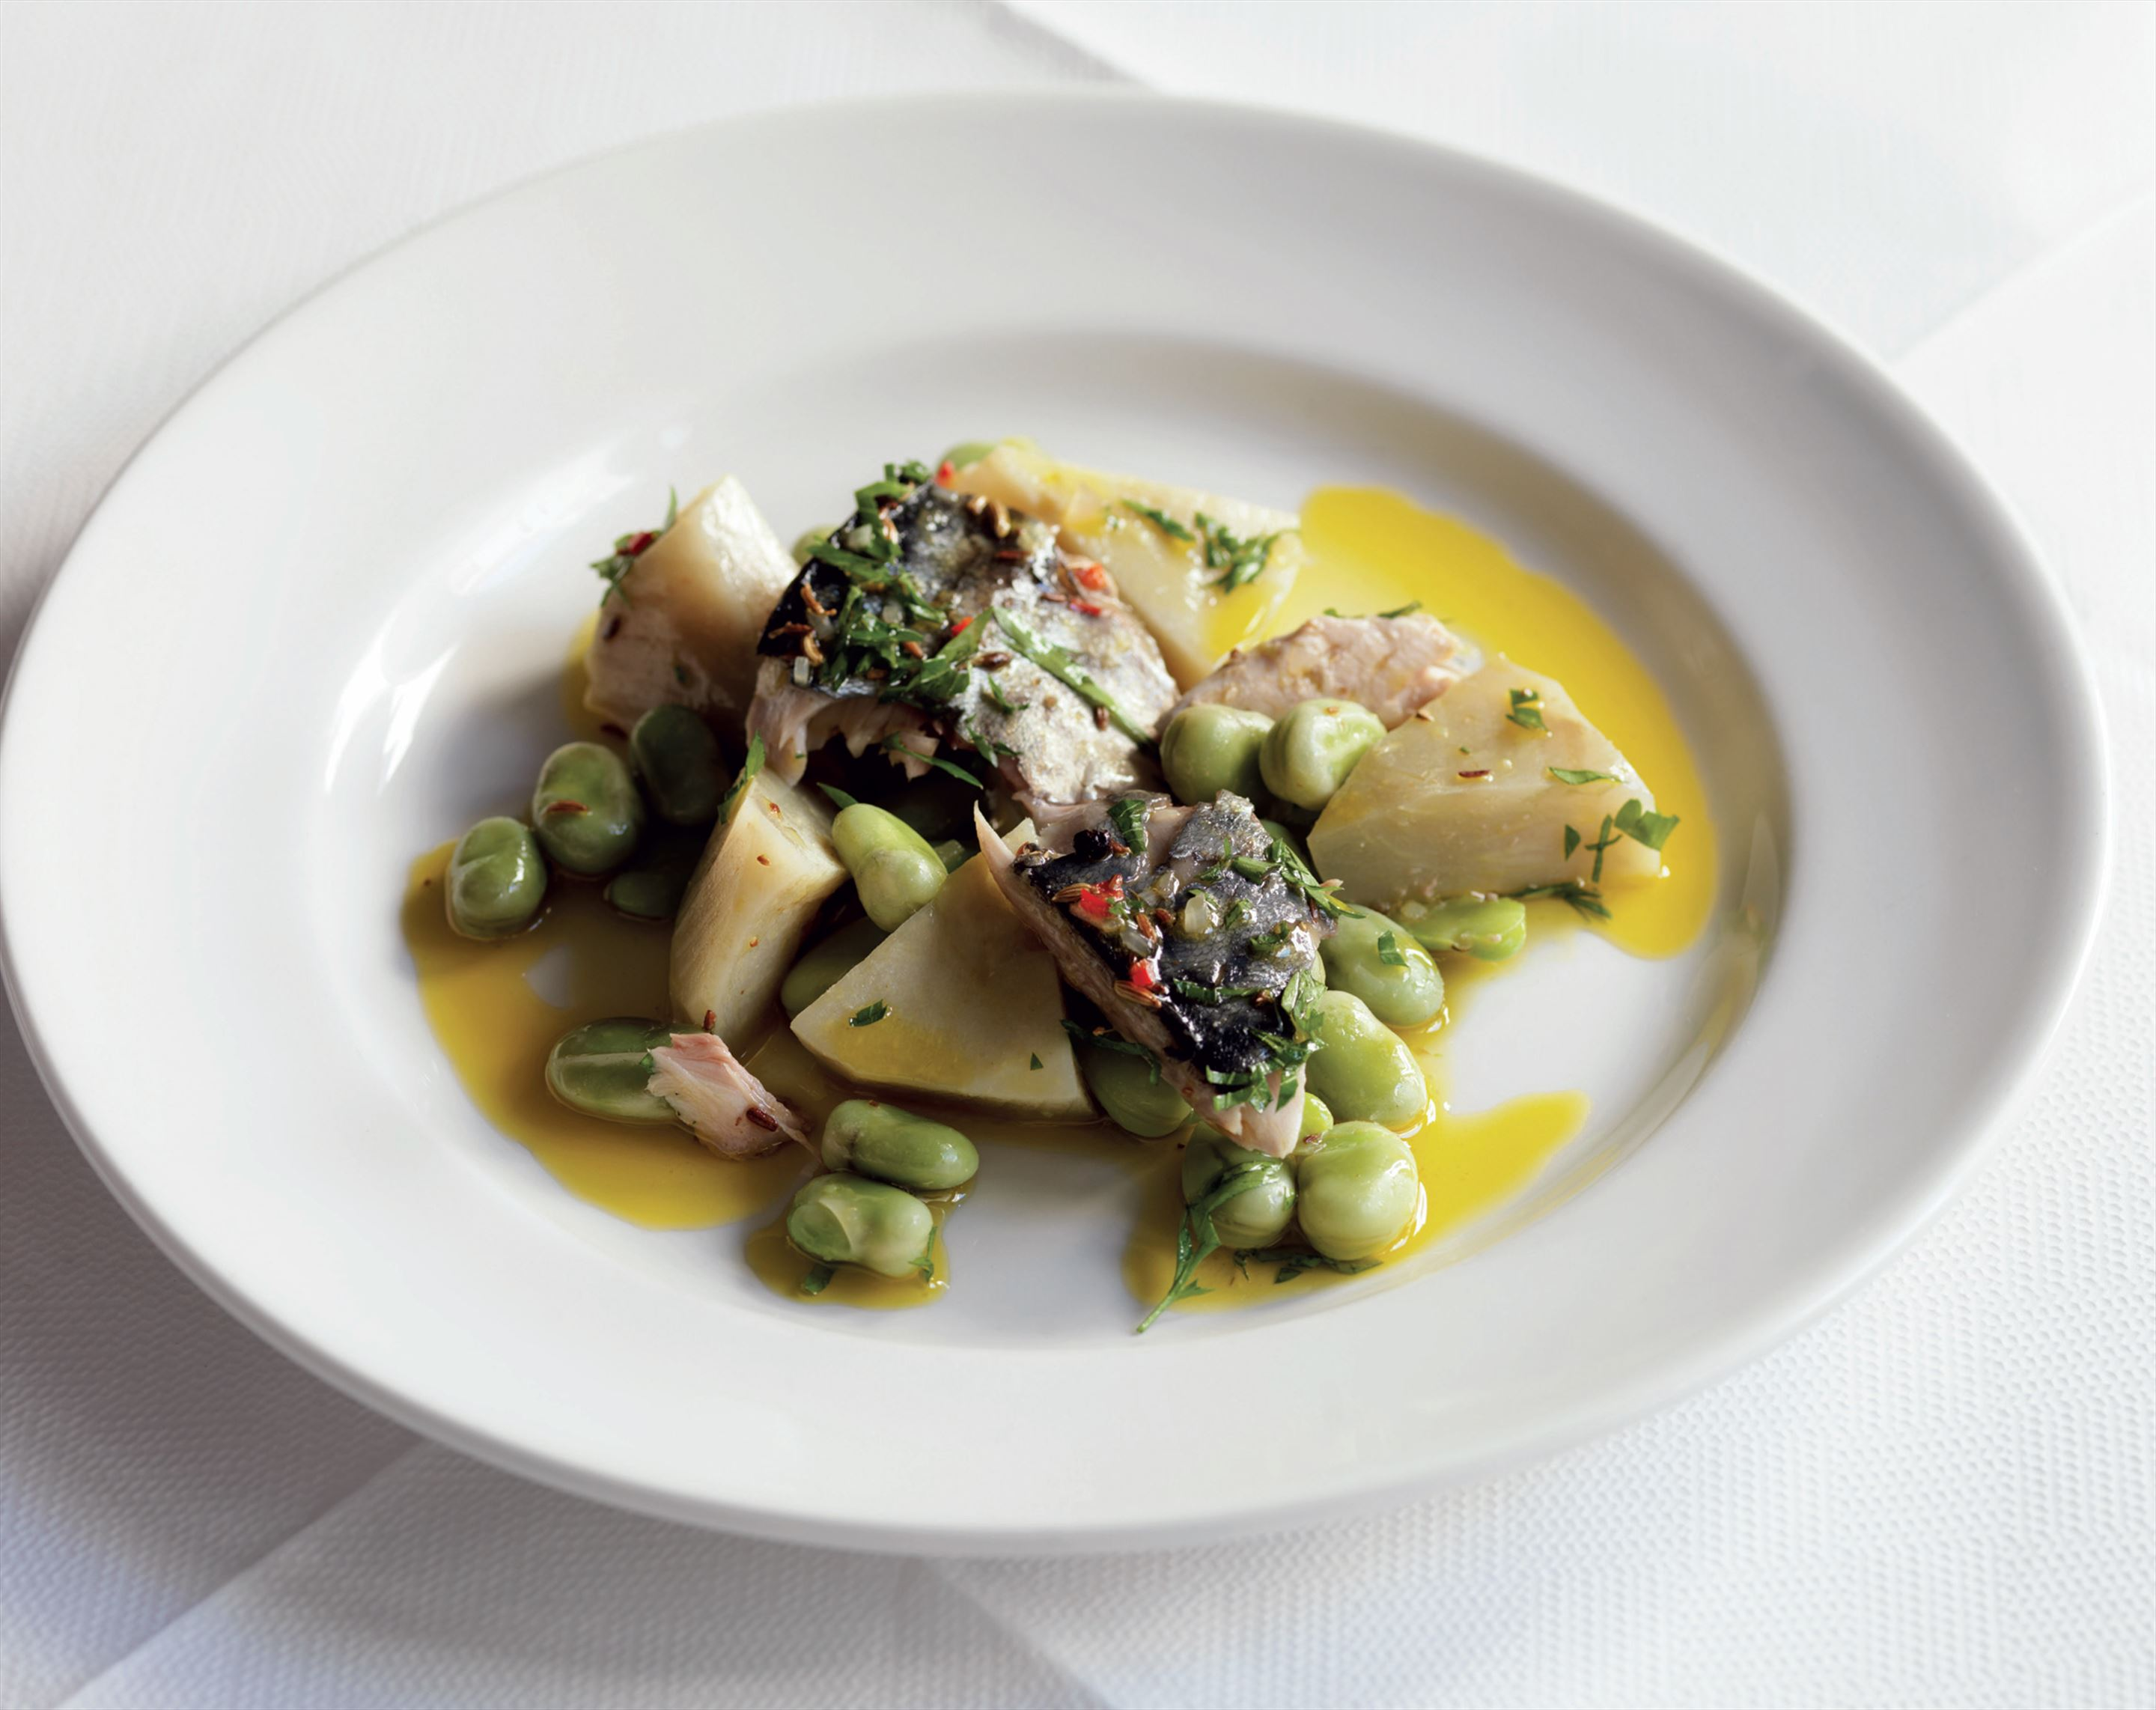 Mackerel with broad beans and artichokes